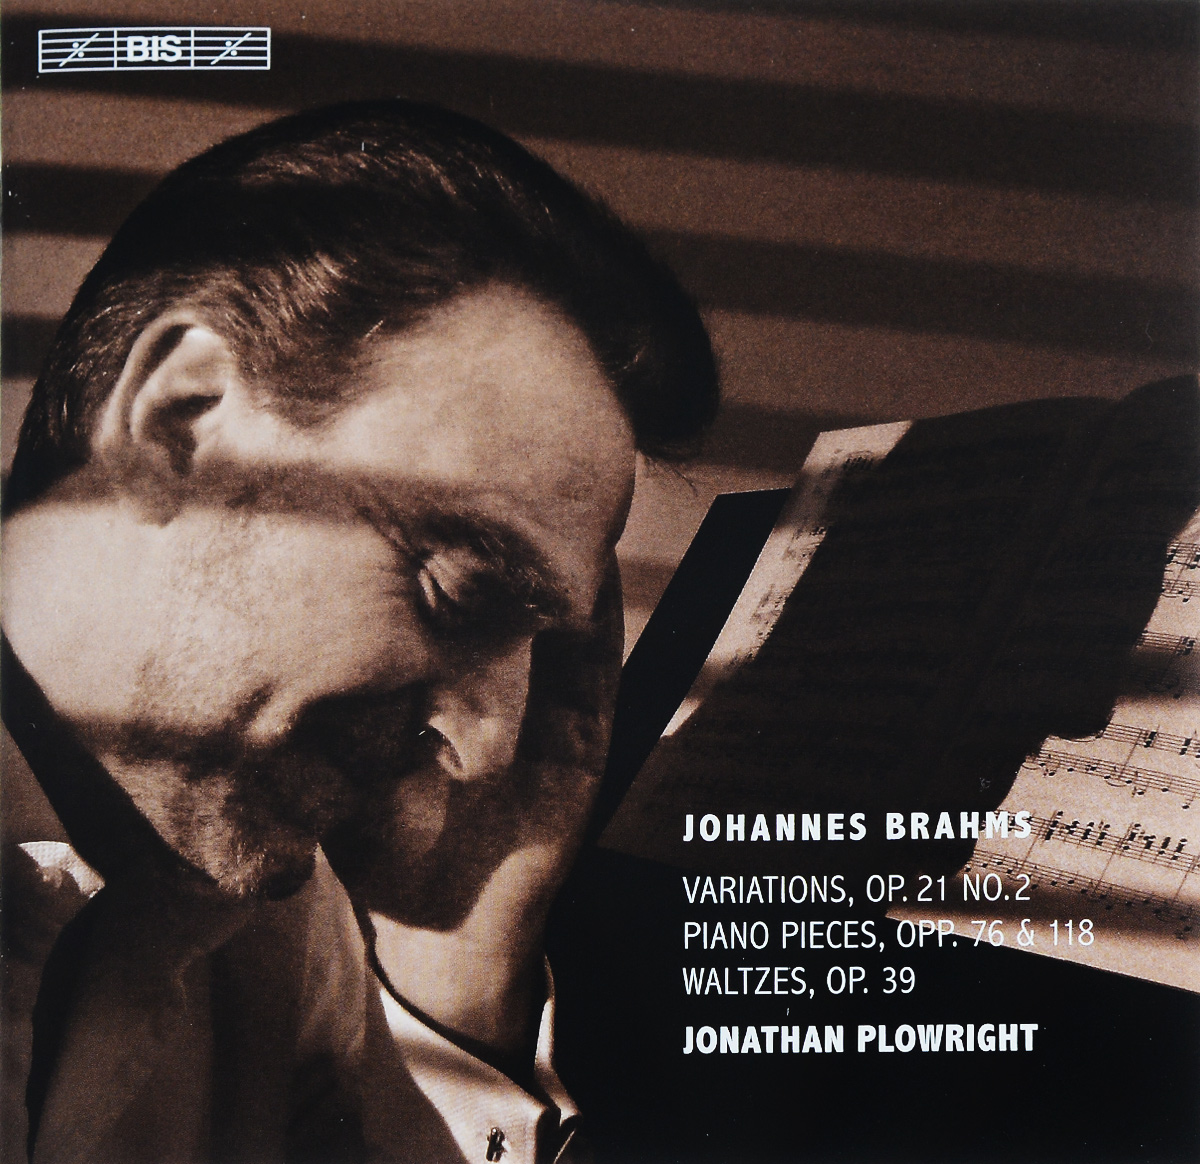 Jonathan Plowright Jonathan Plowright. Johannes Brahms. Variations, Op. 21 No. 2. Piano Pieces, Opp. 76 & 118. Waltzes, Op. 39 (SACD) харди риттнер игнац босиндорфэ hardy rittner brahms early piano works vol 2 sacd